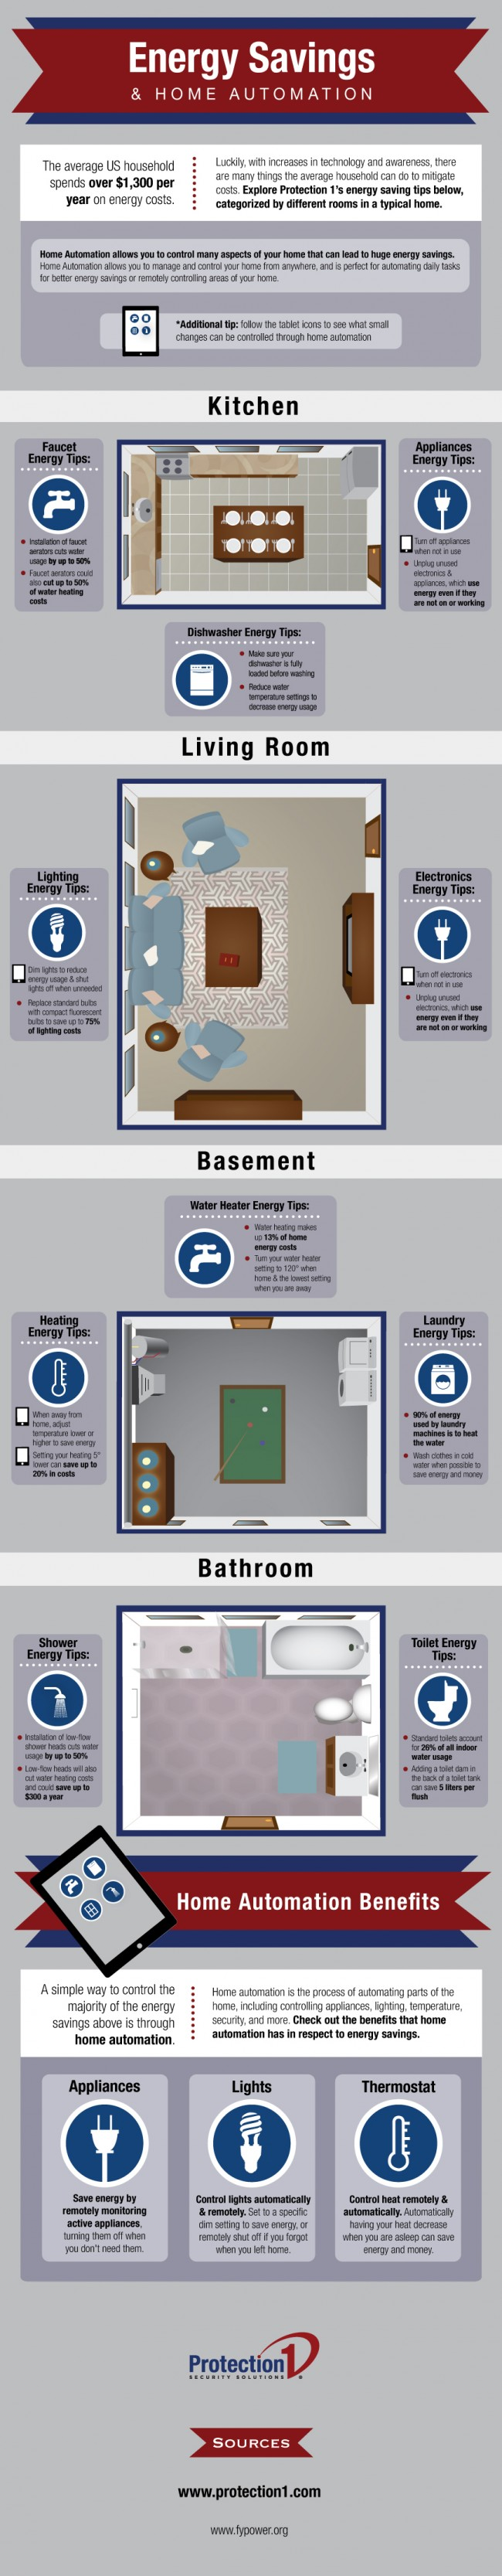 13 01 02 Protection 1 Home Automation Infographic 650x3333 Home Automation Energy Savings Tips